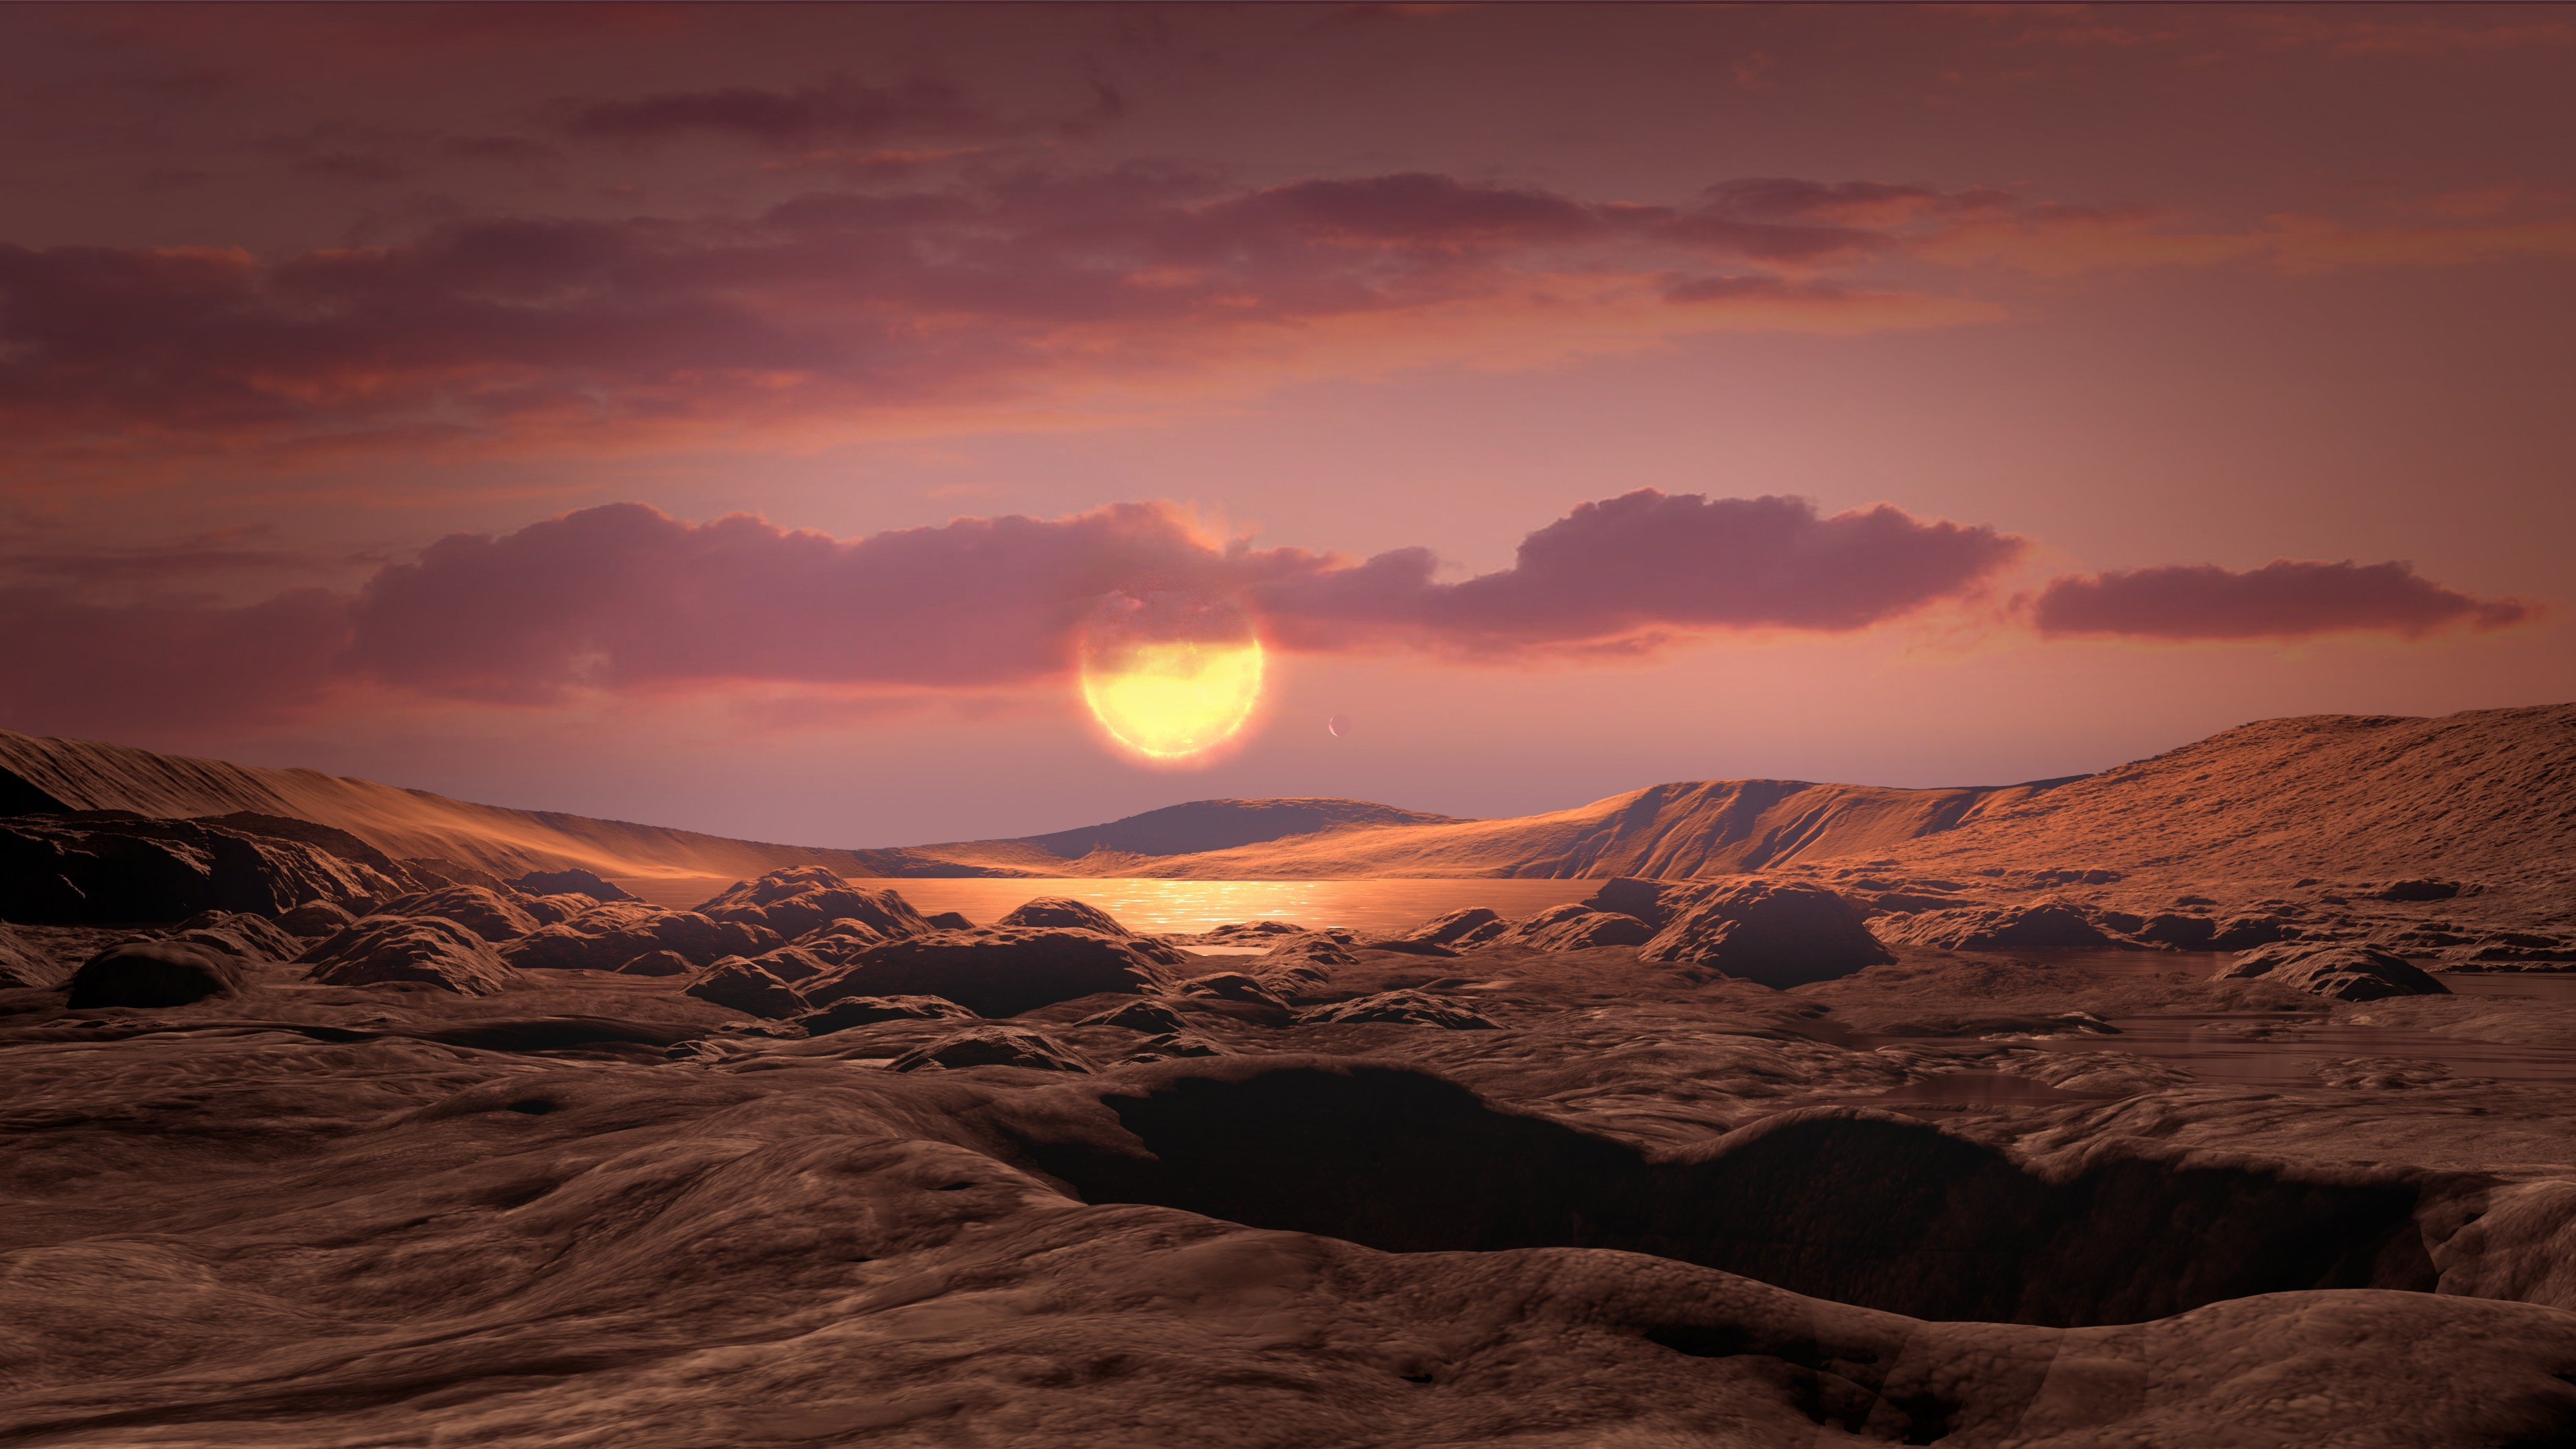 Mysterious potentially habitable Earth-like planet found 'hiding in plain sight'